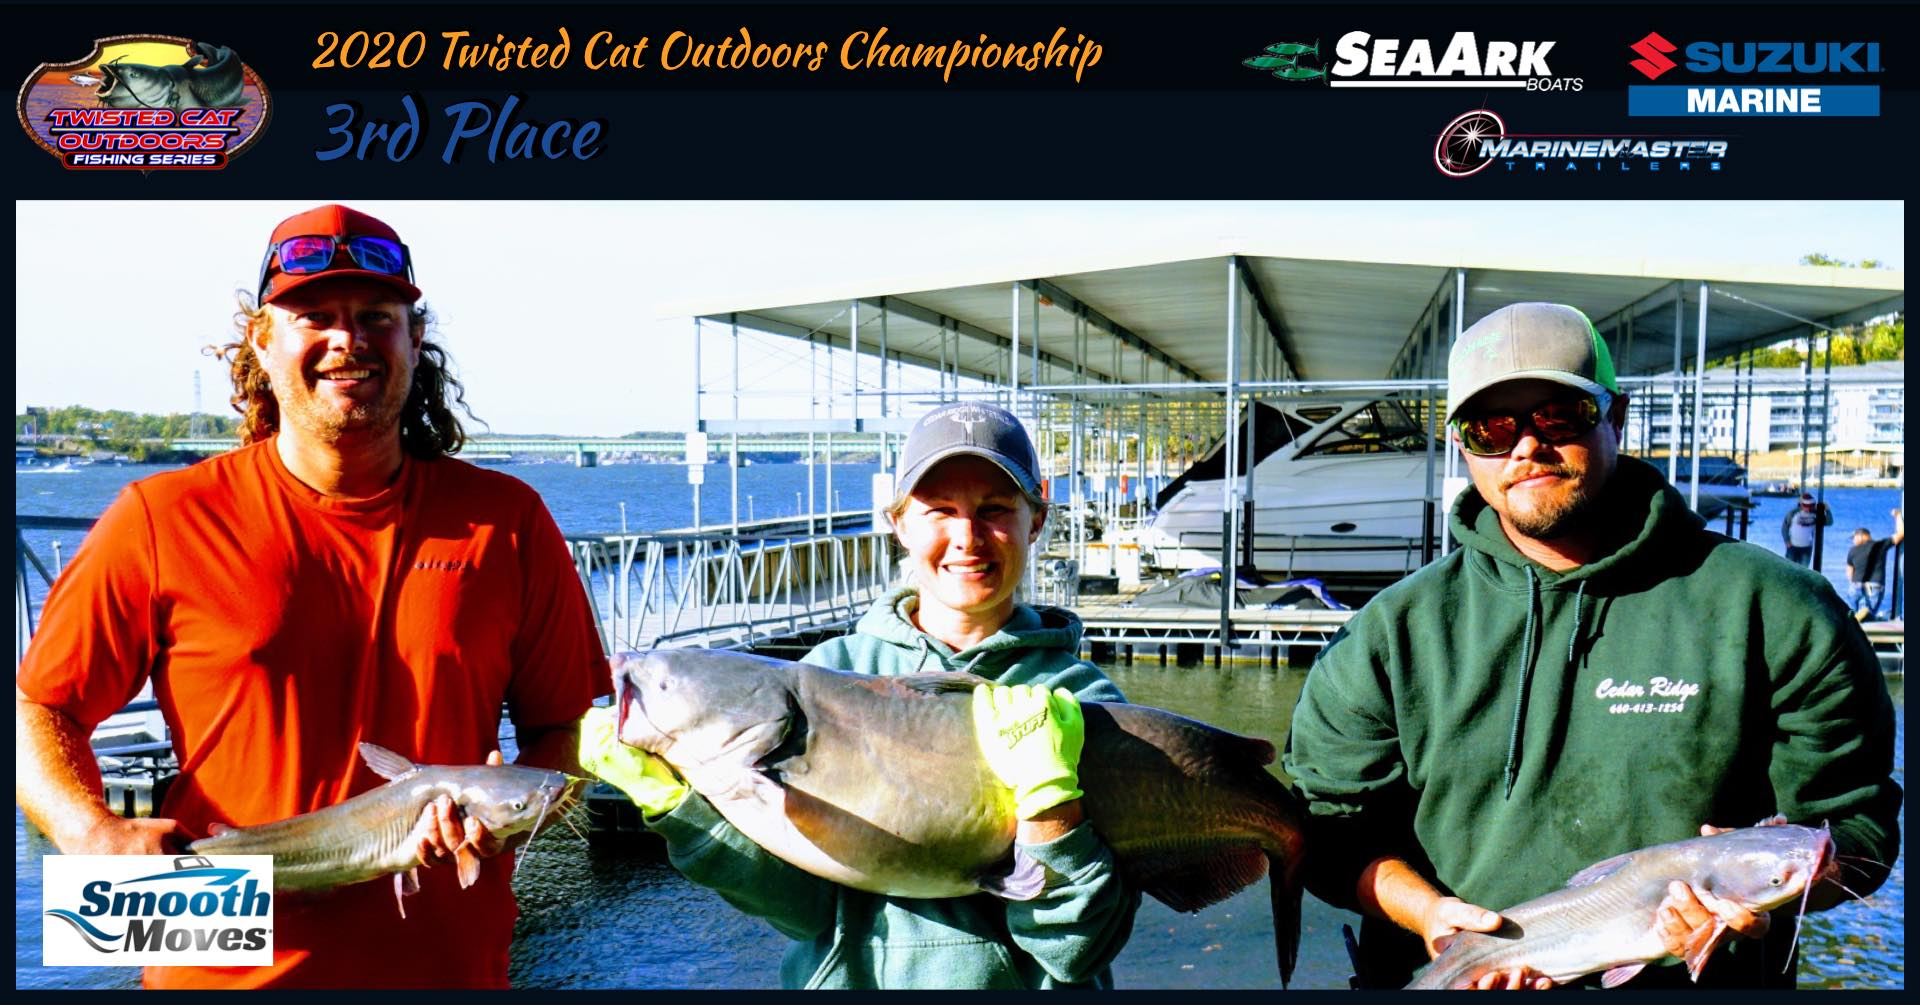 catfish, tournament, Twisted Cats Outdoors, Alex Nagle, blue, cats, flatheads, channel cats, Lake of the Ozarks